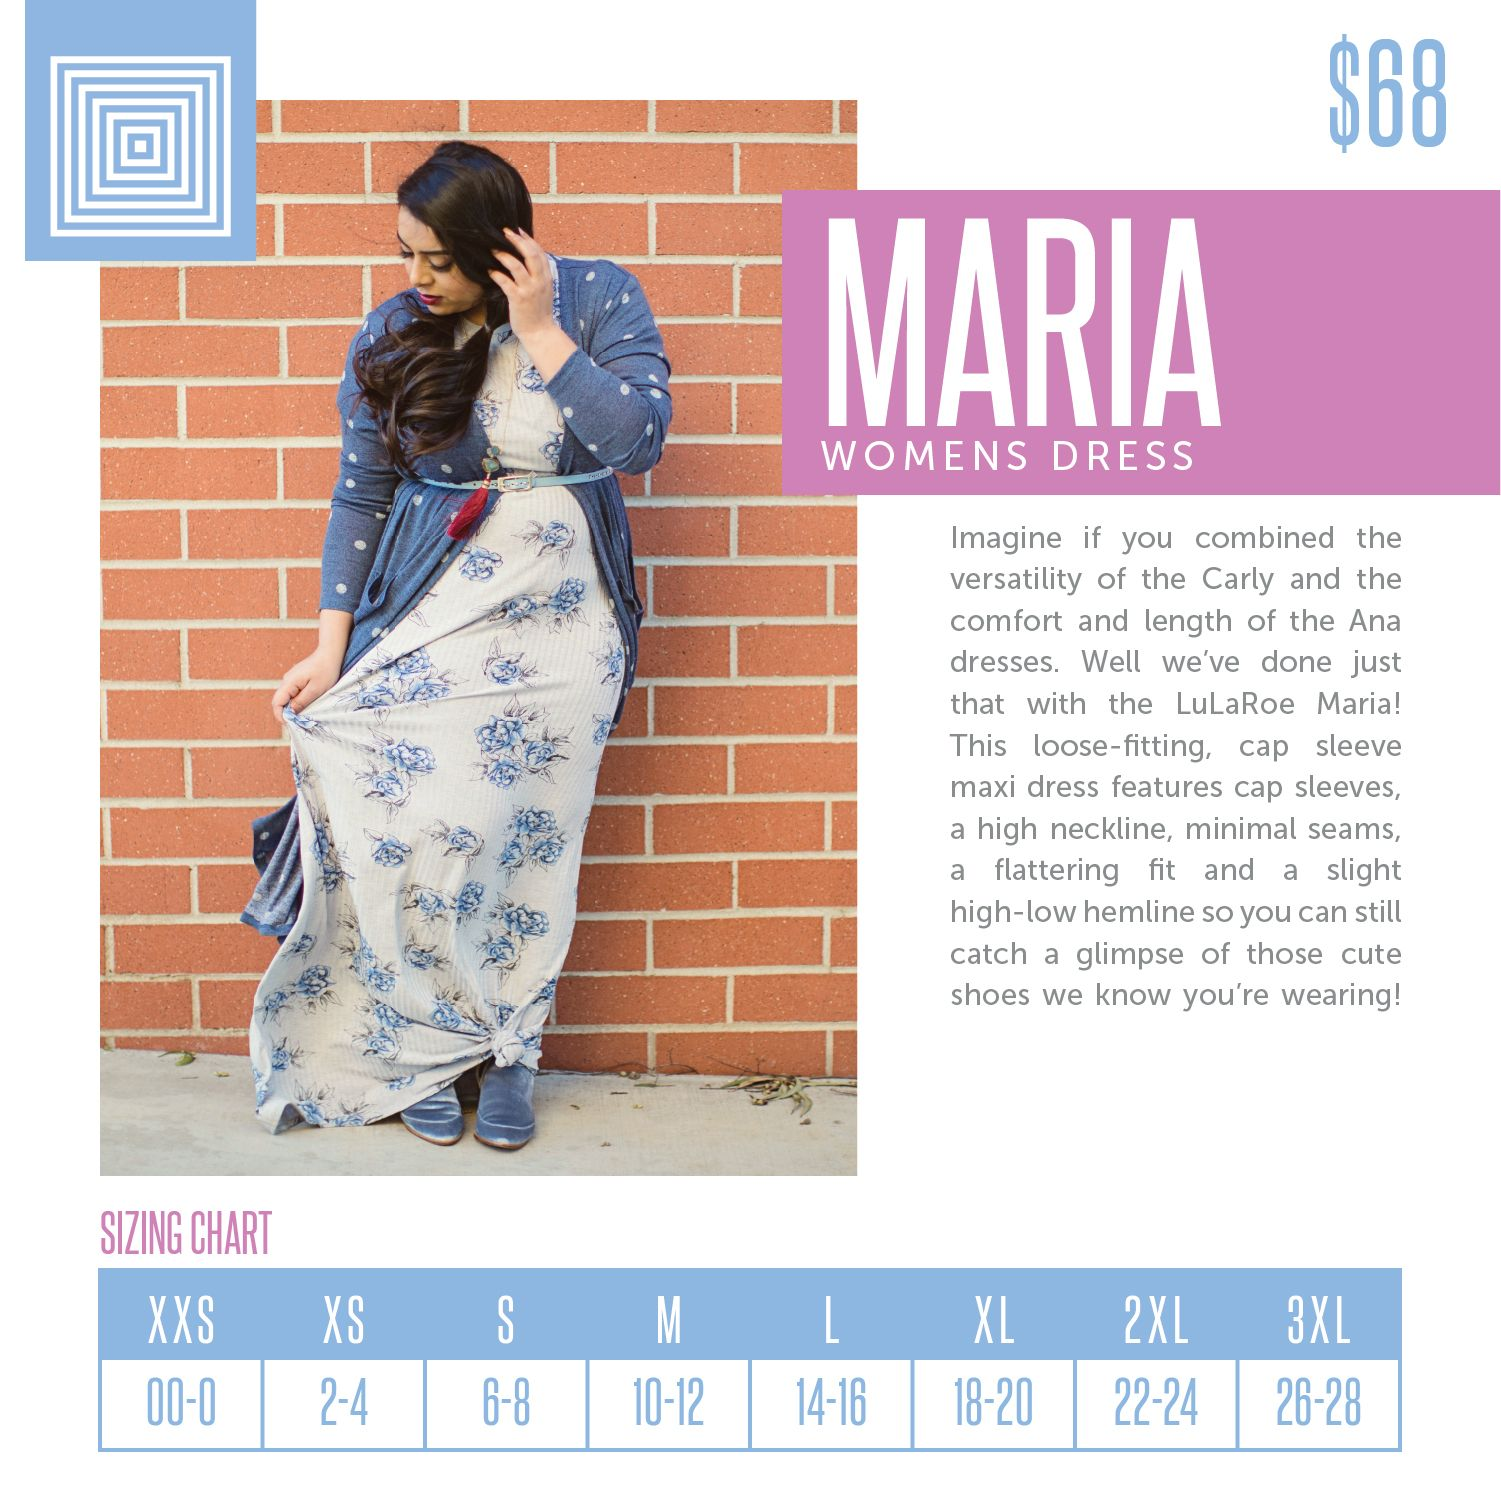 Lularoe maria sizing chart also what shall  wear in rh pinterest